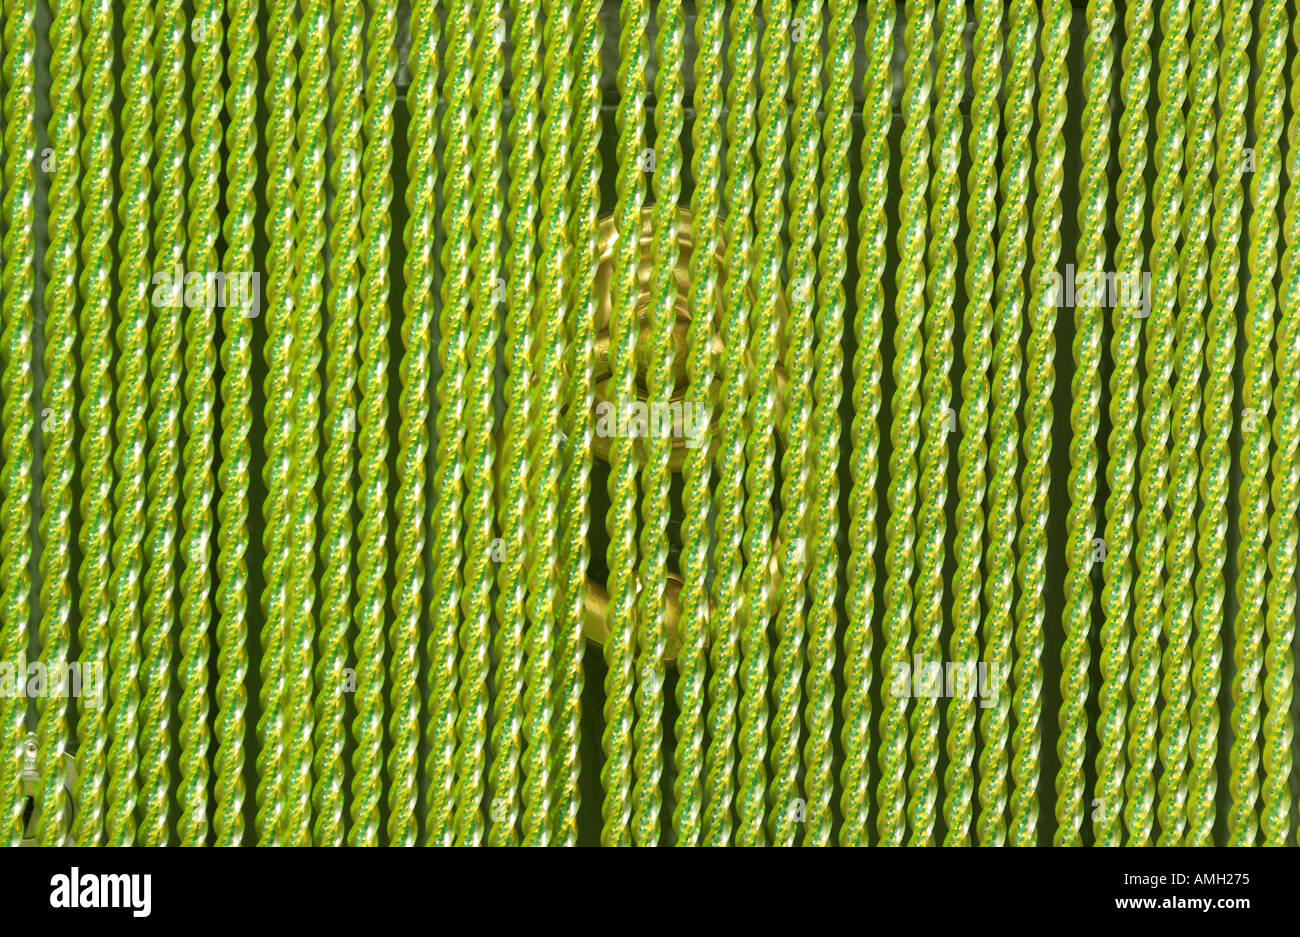 Green plastic fly screen in Italy Stock Photo: 2822772 - Alamy